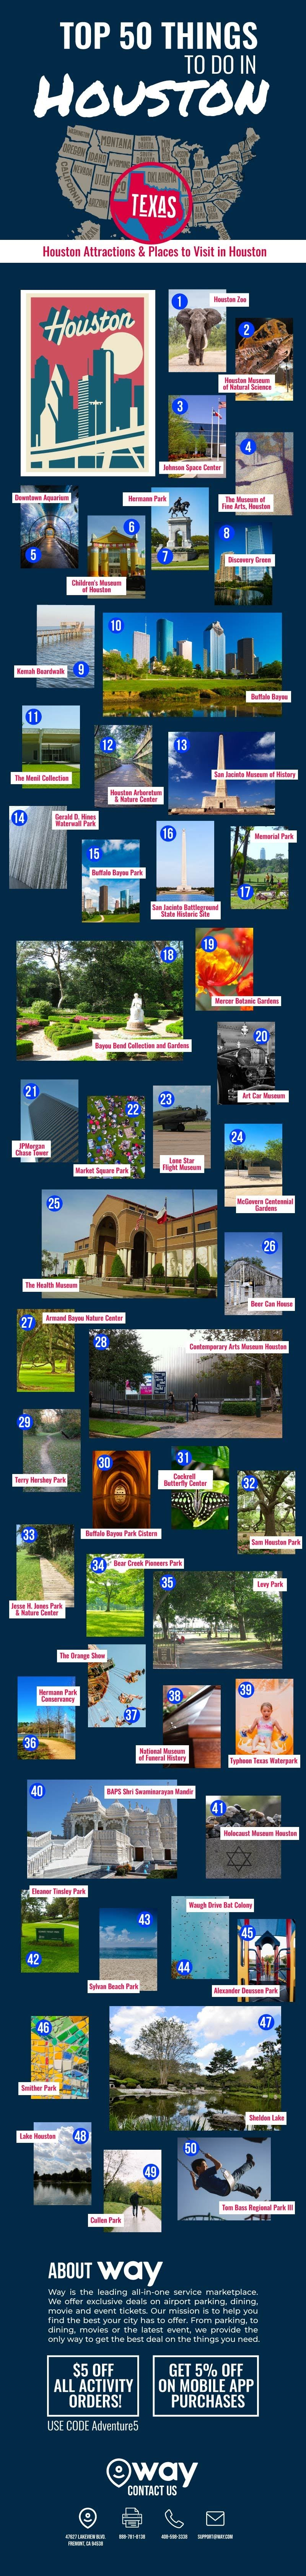 Top 50 Things to Do in Houston #infographic